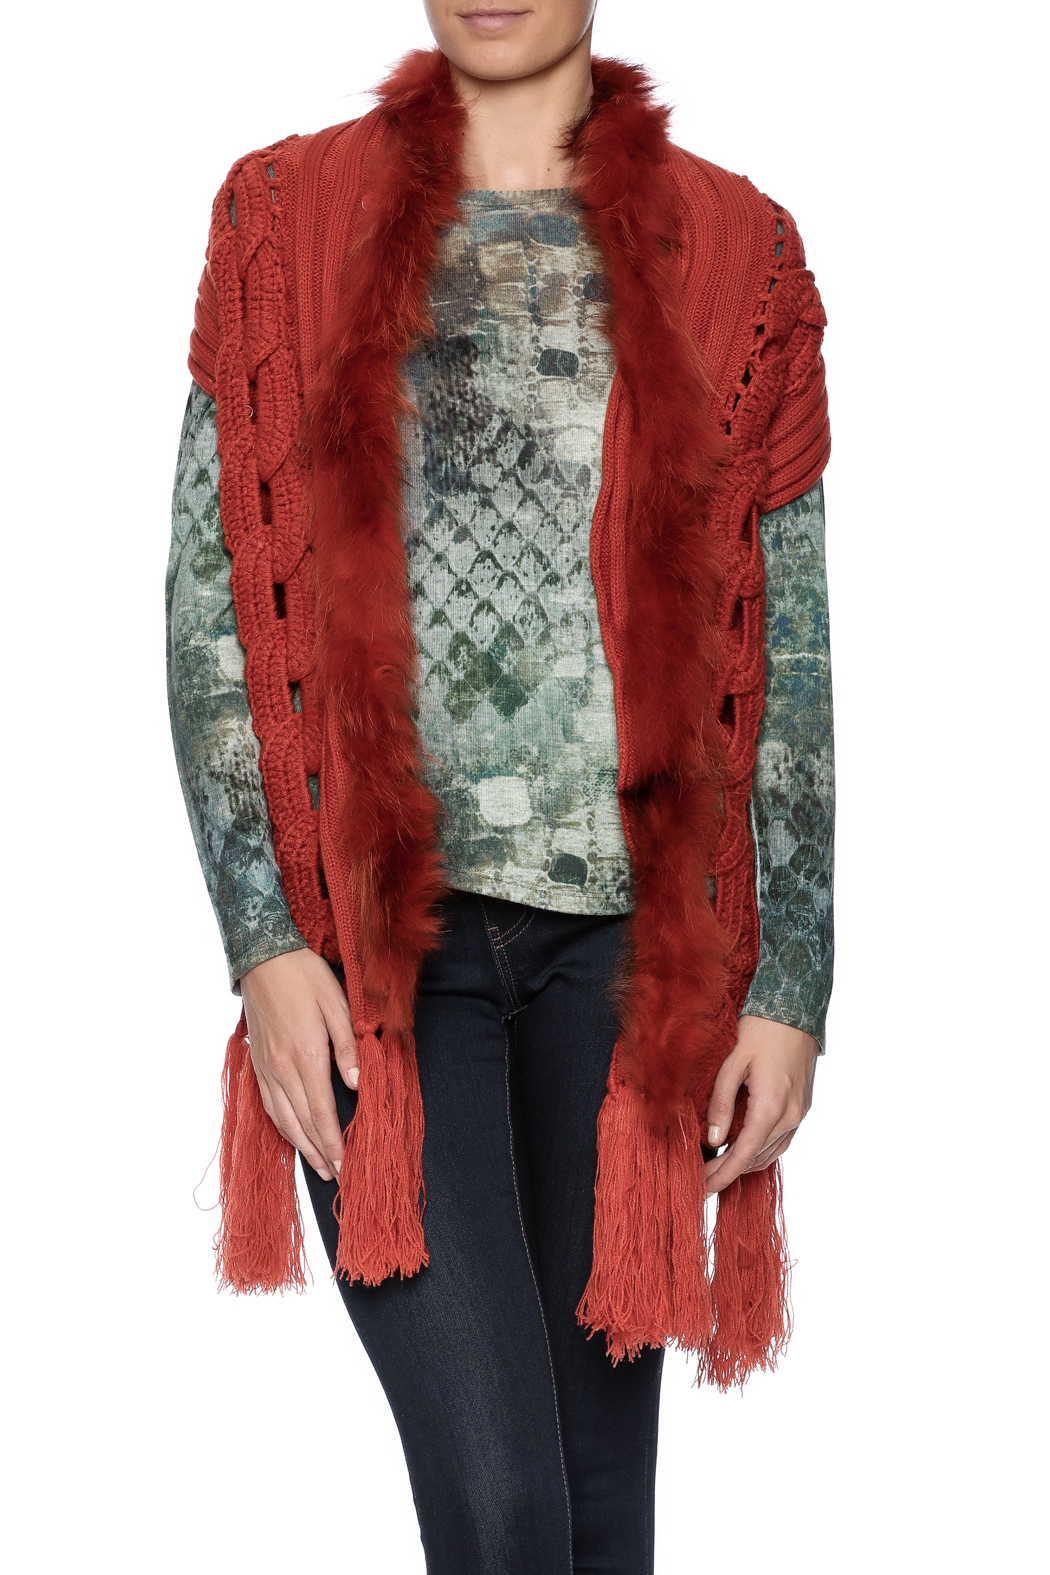 d91e591780d Talk of the Walk Fox Trim Cable Knit Vest from Atlantic City ...